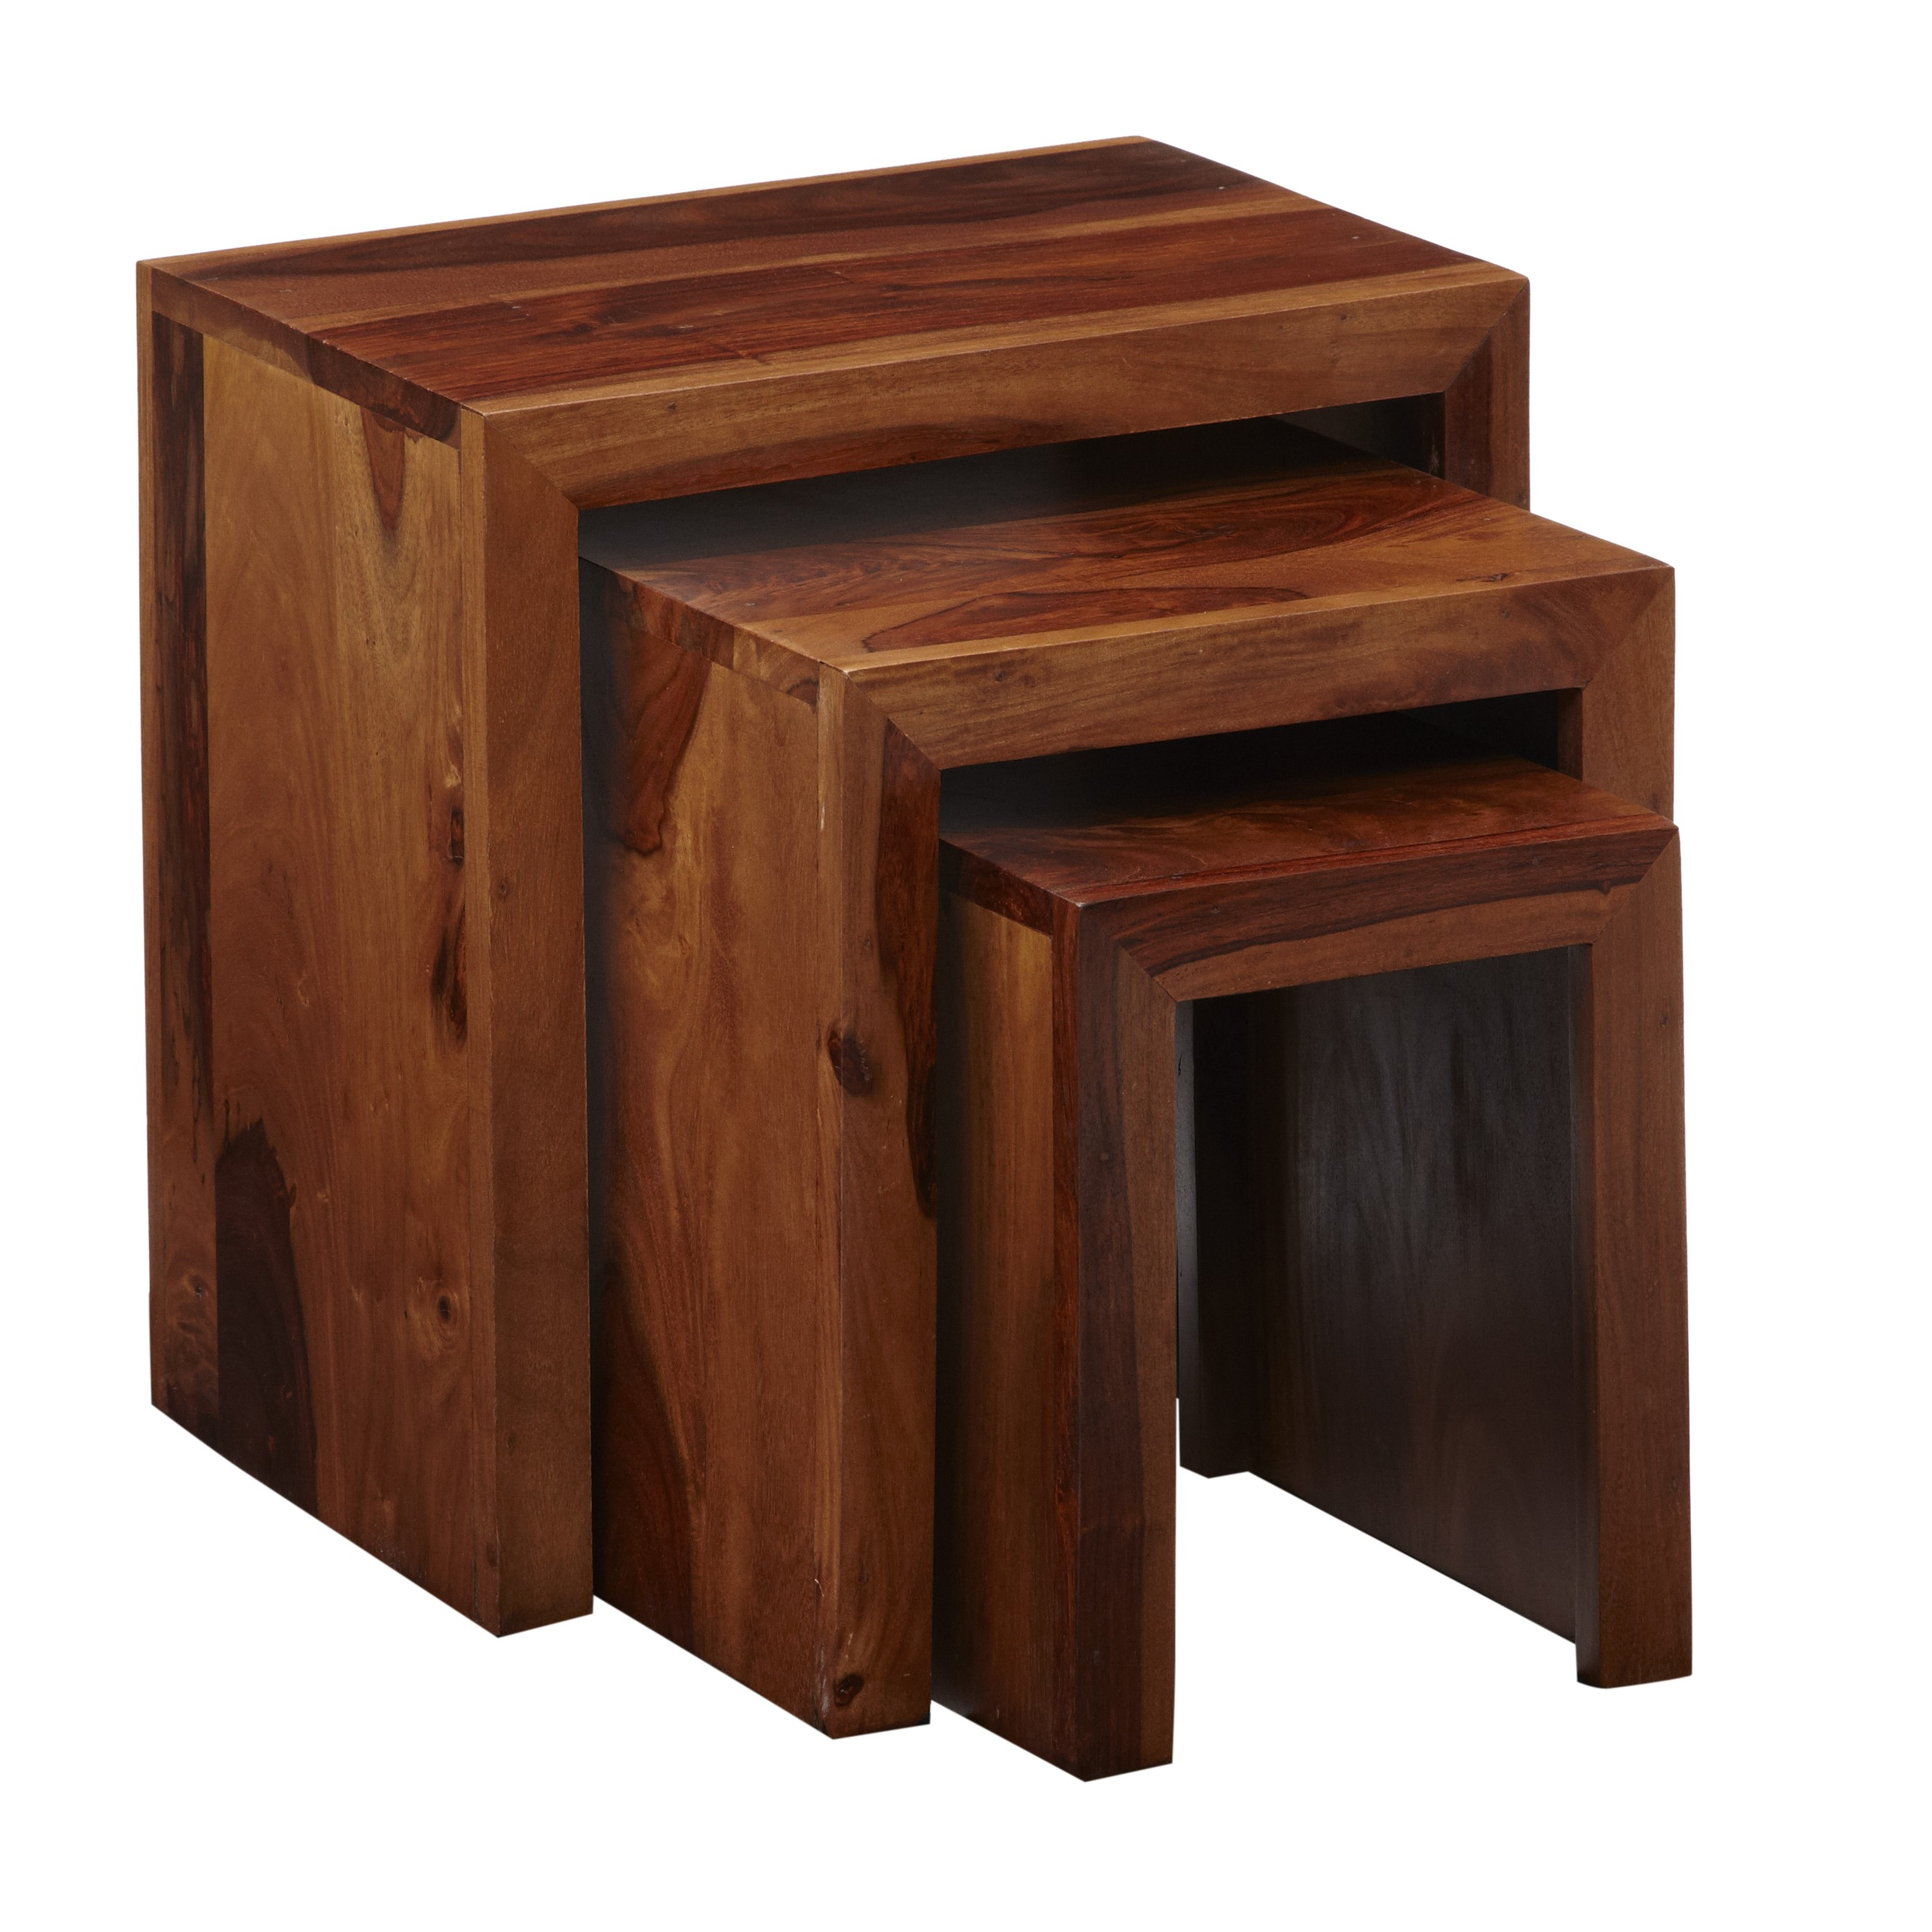 Cube Sheesham Nest of 3 Tables Verty Indian Furniture : sheeshamnest from vertyfurniture.co.uk size 2737 x 2737 jpeg 794kB